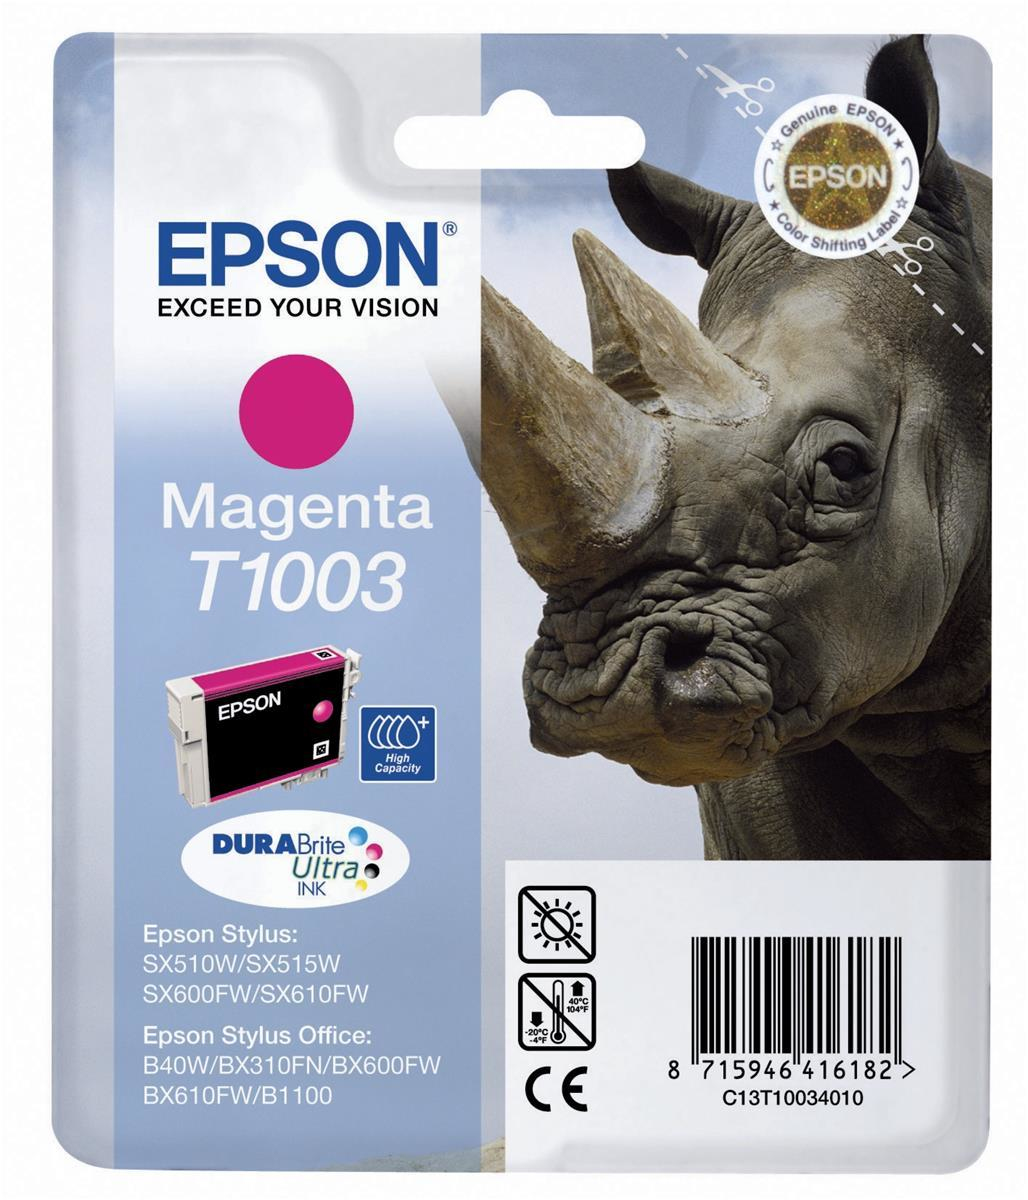 Epson T1003 Magenta Ink Cartridge C13t10034010 - WC01